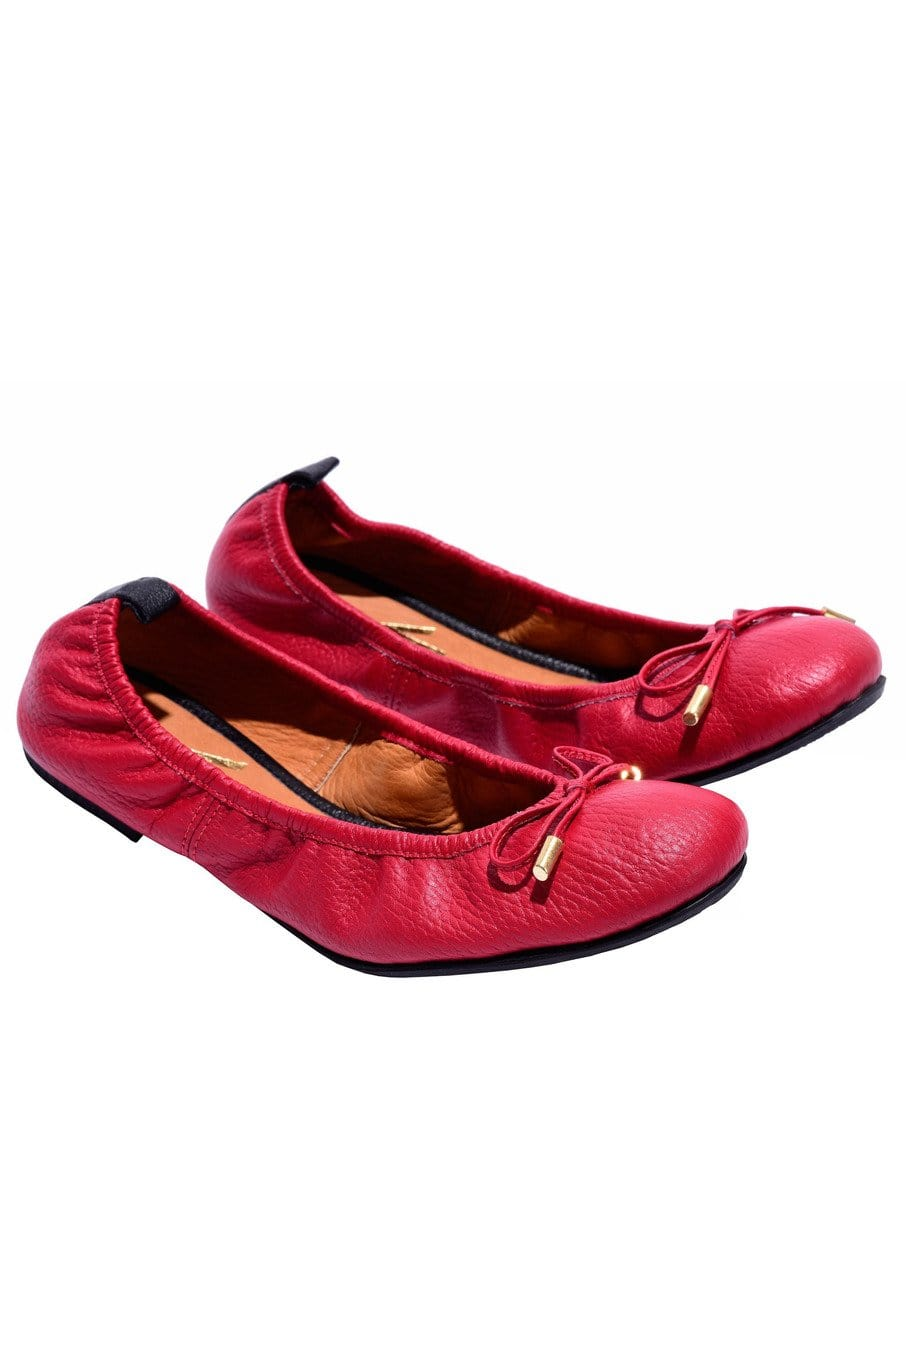 Columbian Leather Ballerina Flats in Red - Himelhoch's